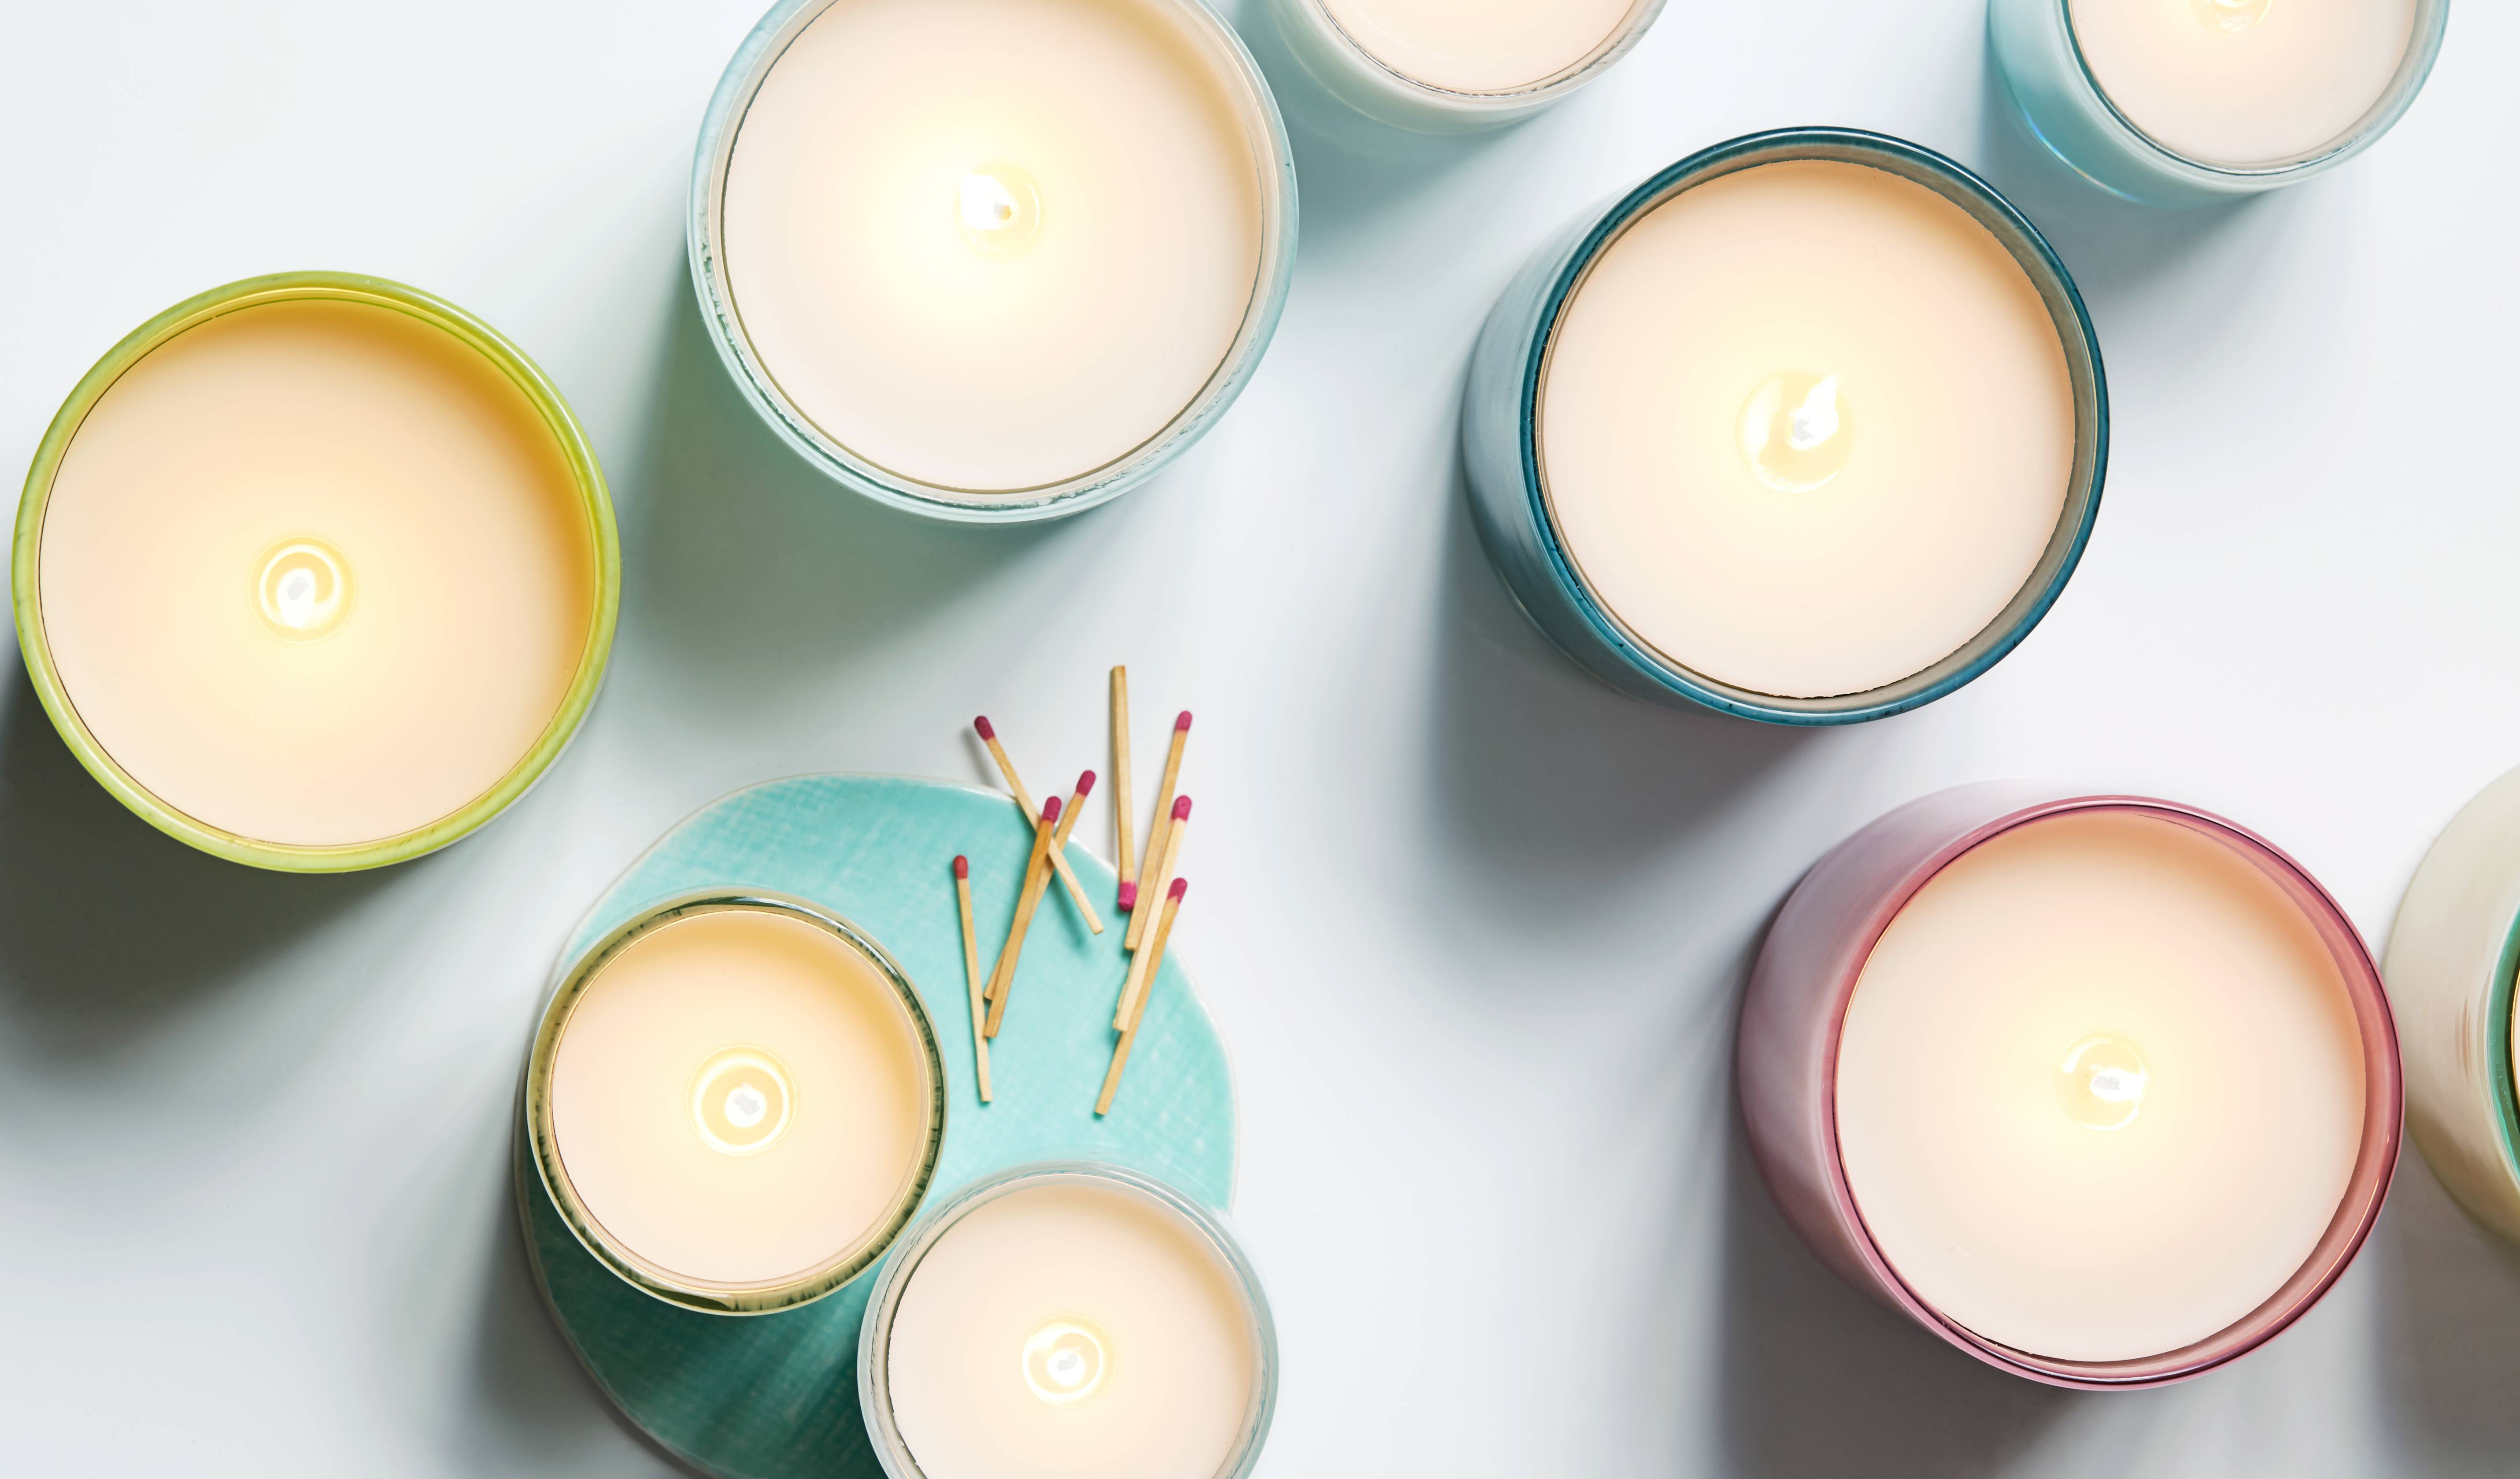 Everything you need for hosting and gifting